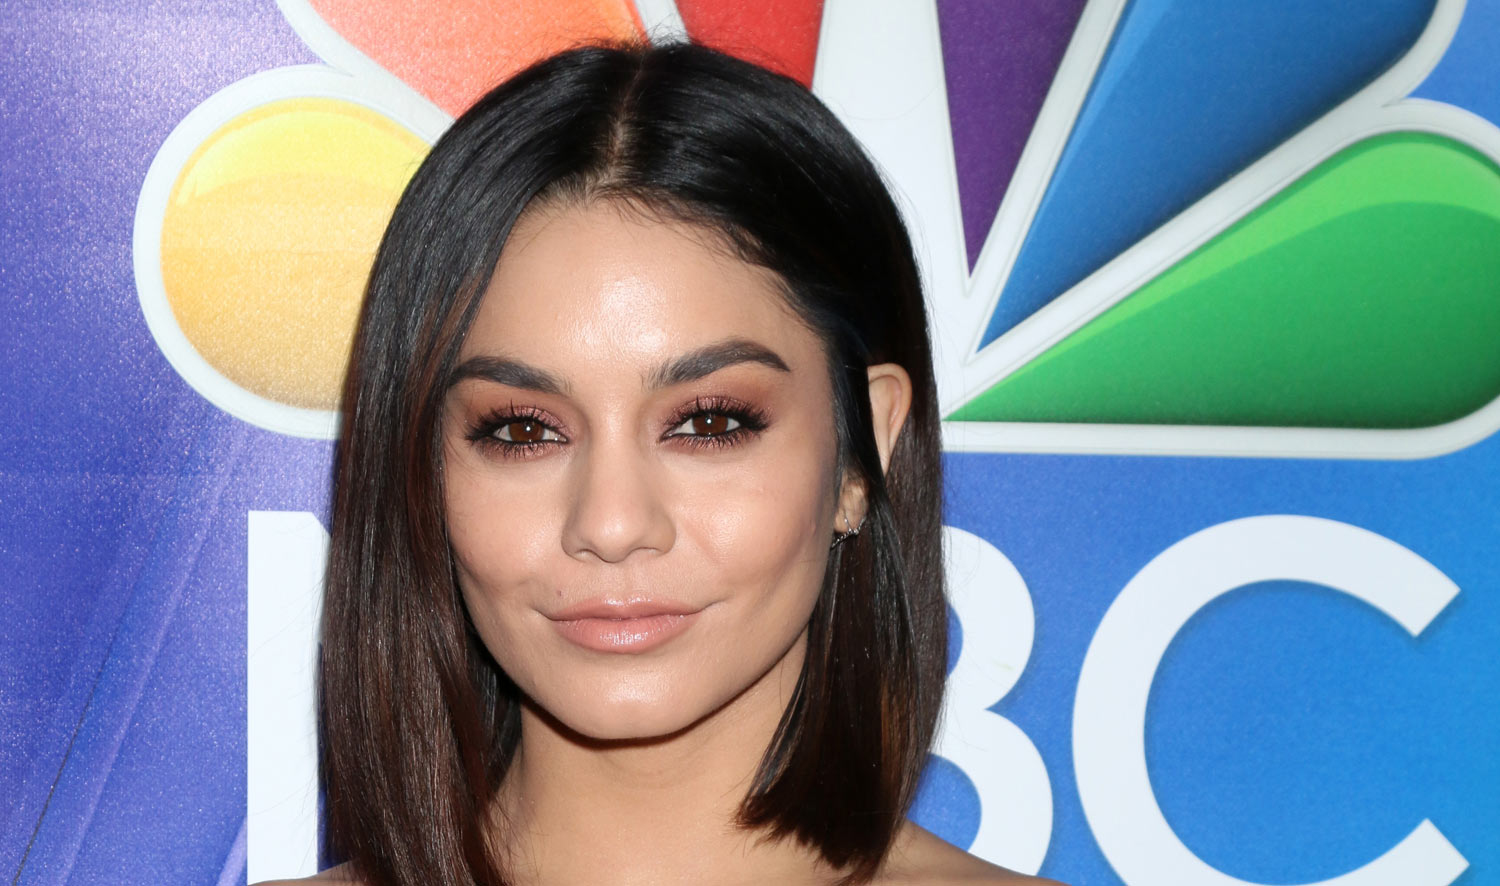 China mcclain breaking news and photos just jared jr page 5 - Vanessa Hudgens On Late Father I Keep Trucking On But Still Feel His Presence In My Heart